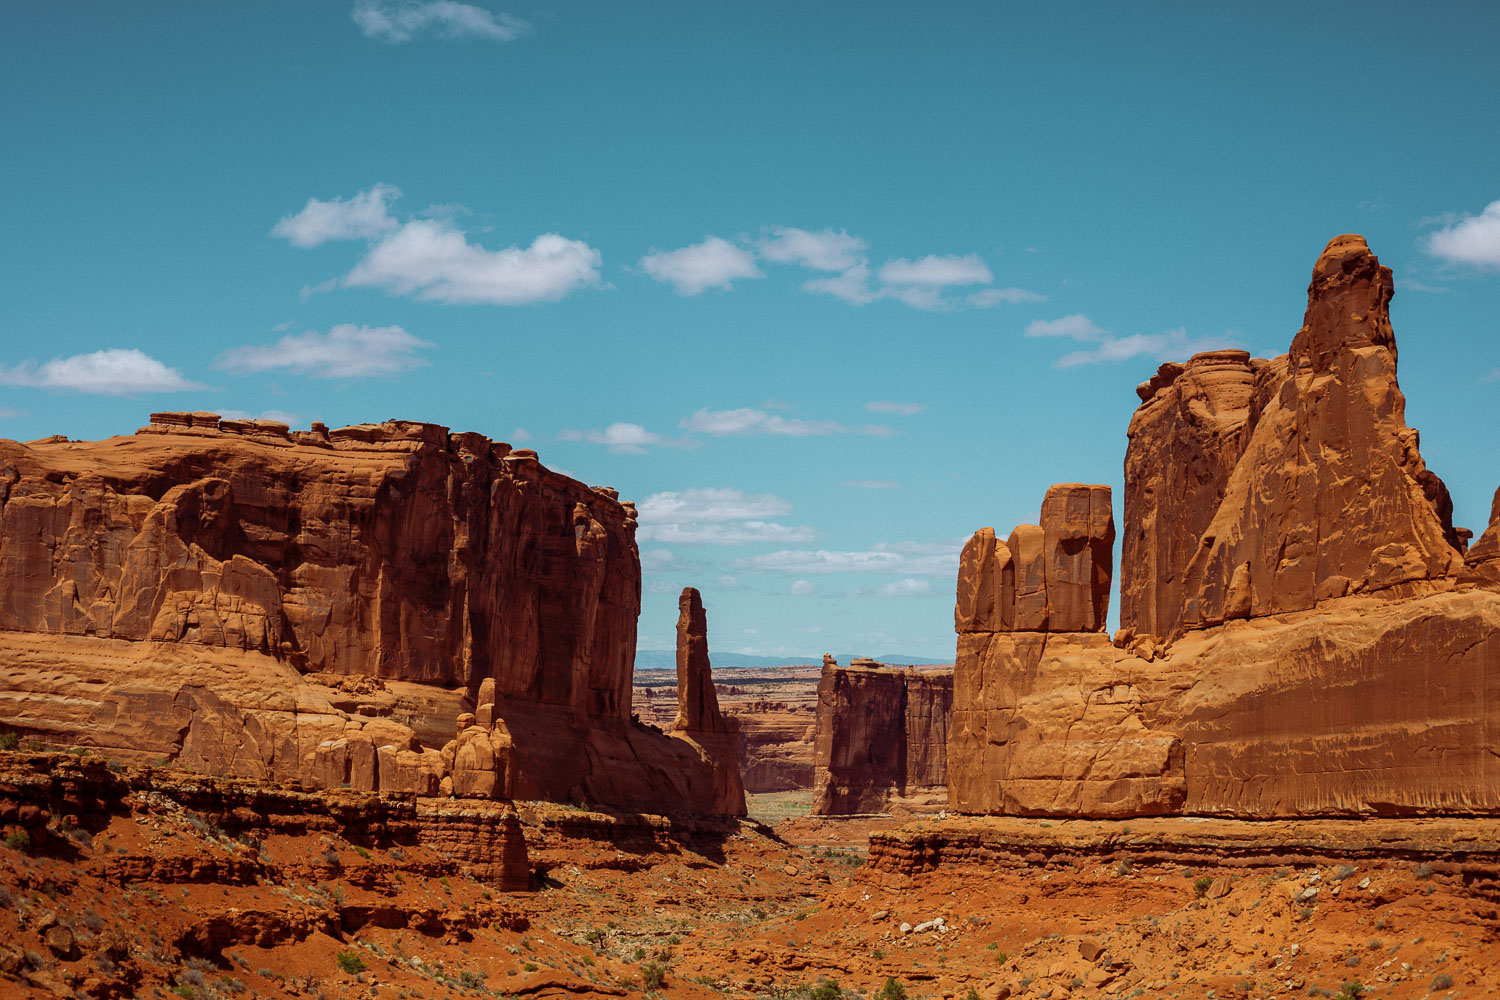 Rachel Off Duty: Scenic Red Rock Landscapes in Arches National Park